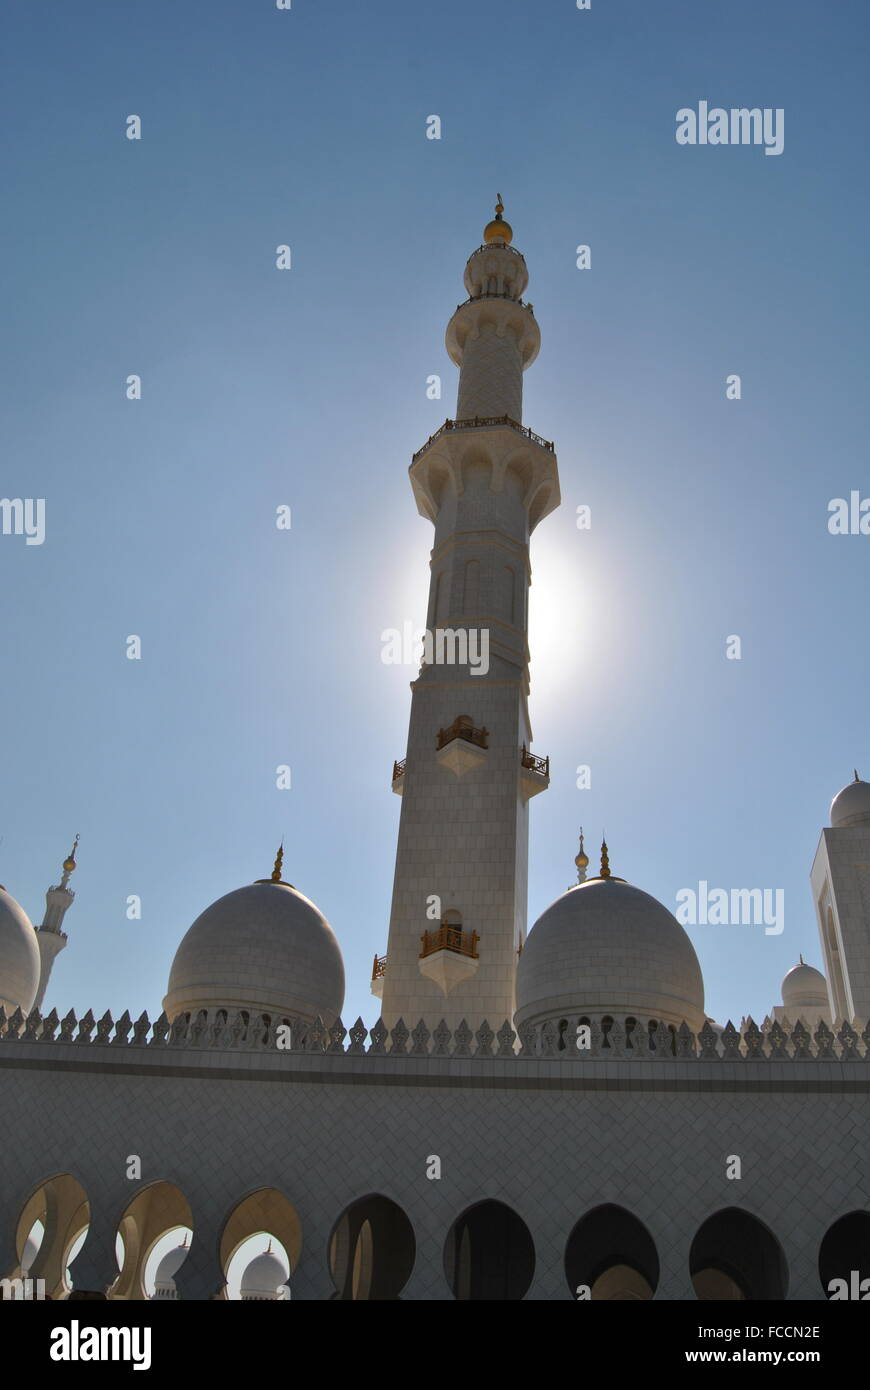 Minaret Of Sheikh Zayed Grand Mosque Against Clear Blue Sky Stock Photo